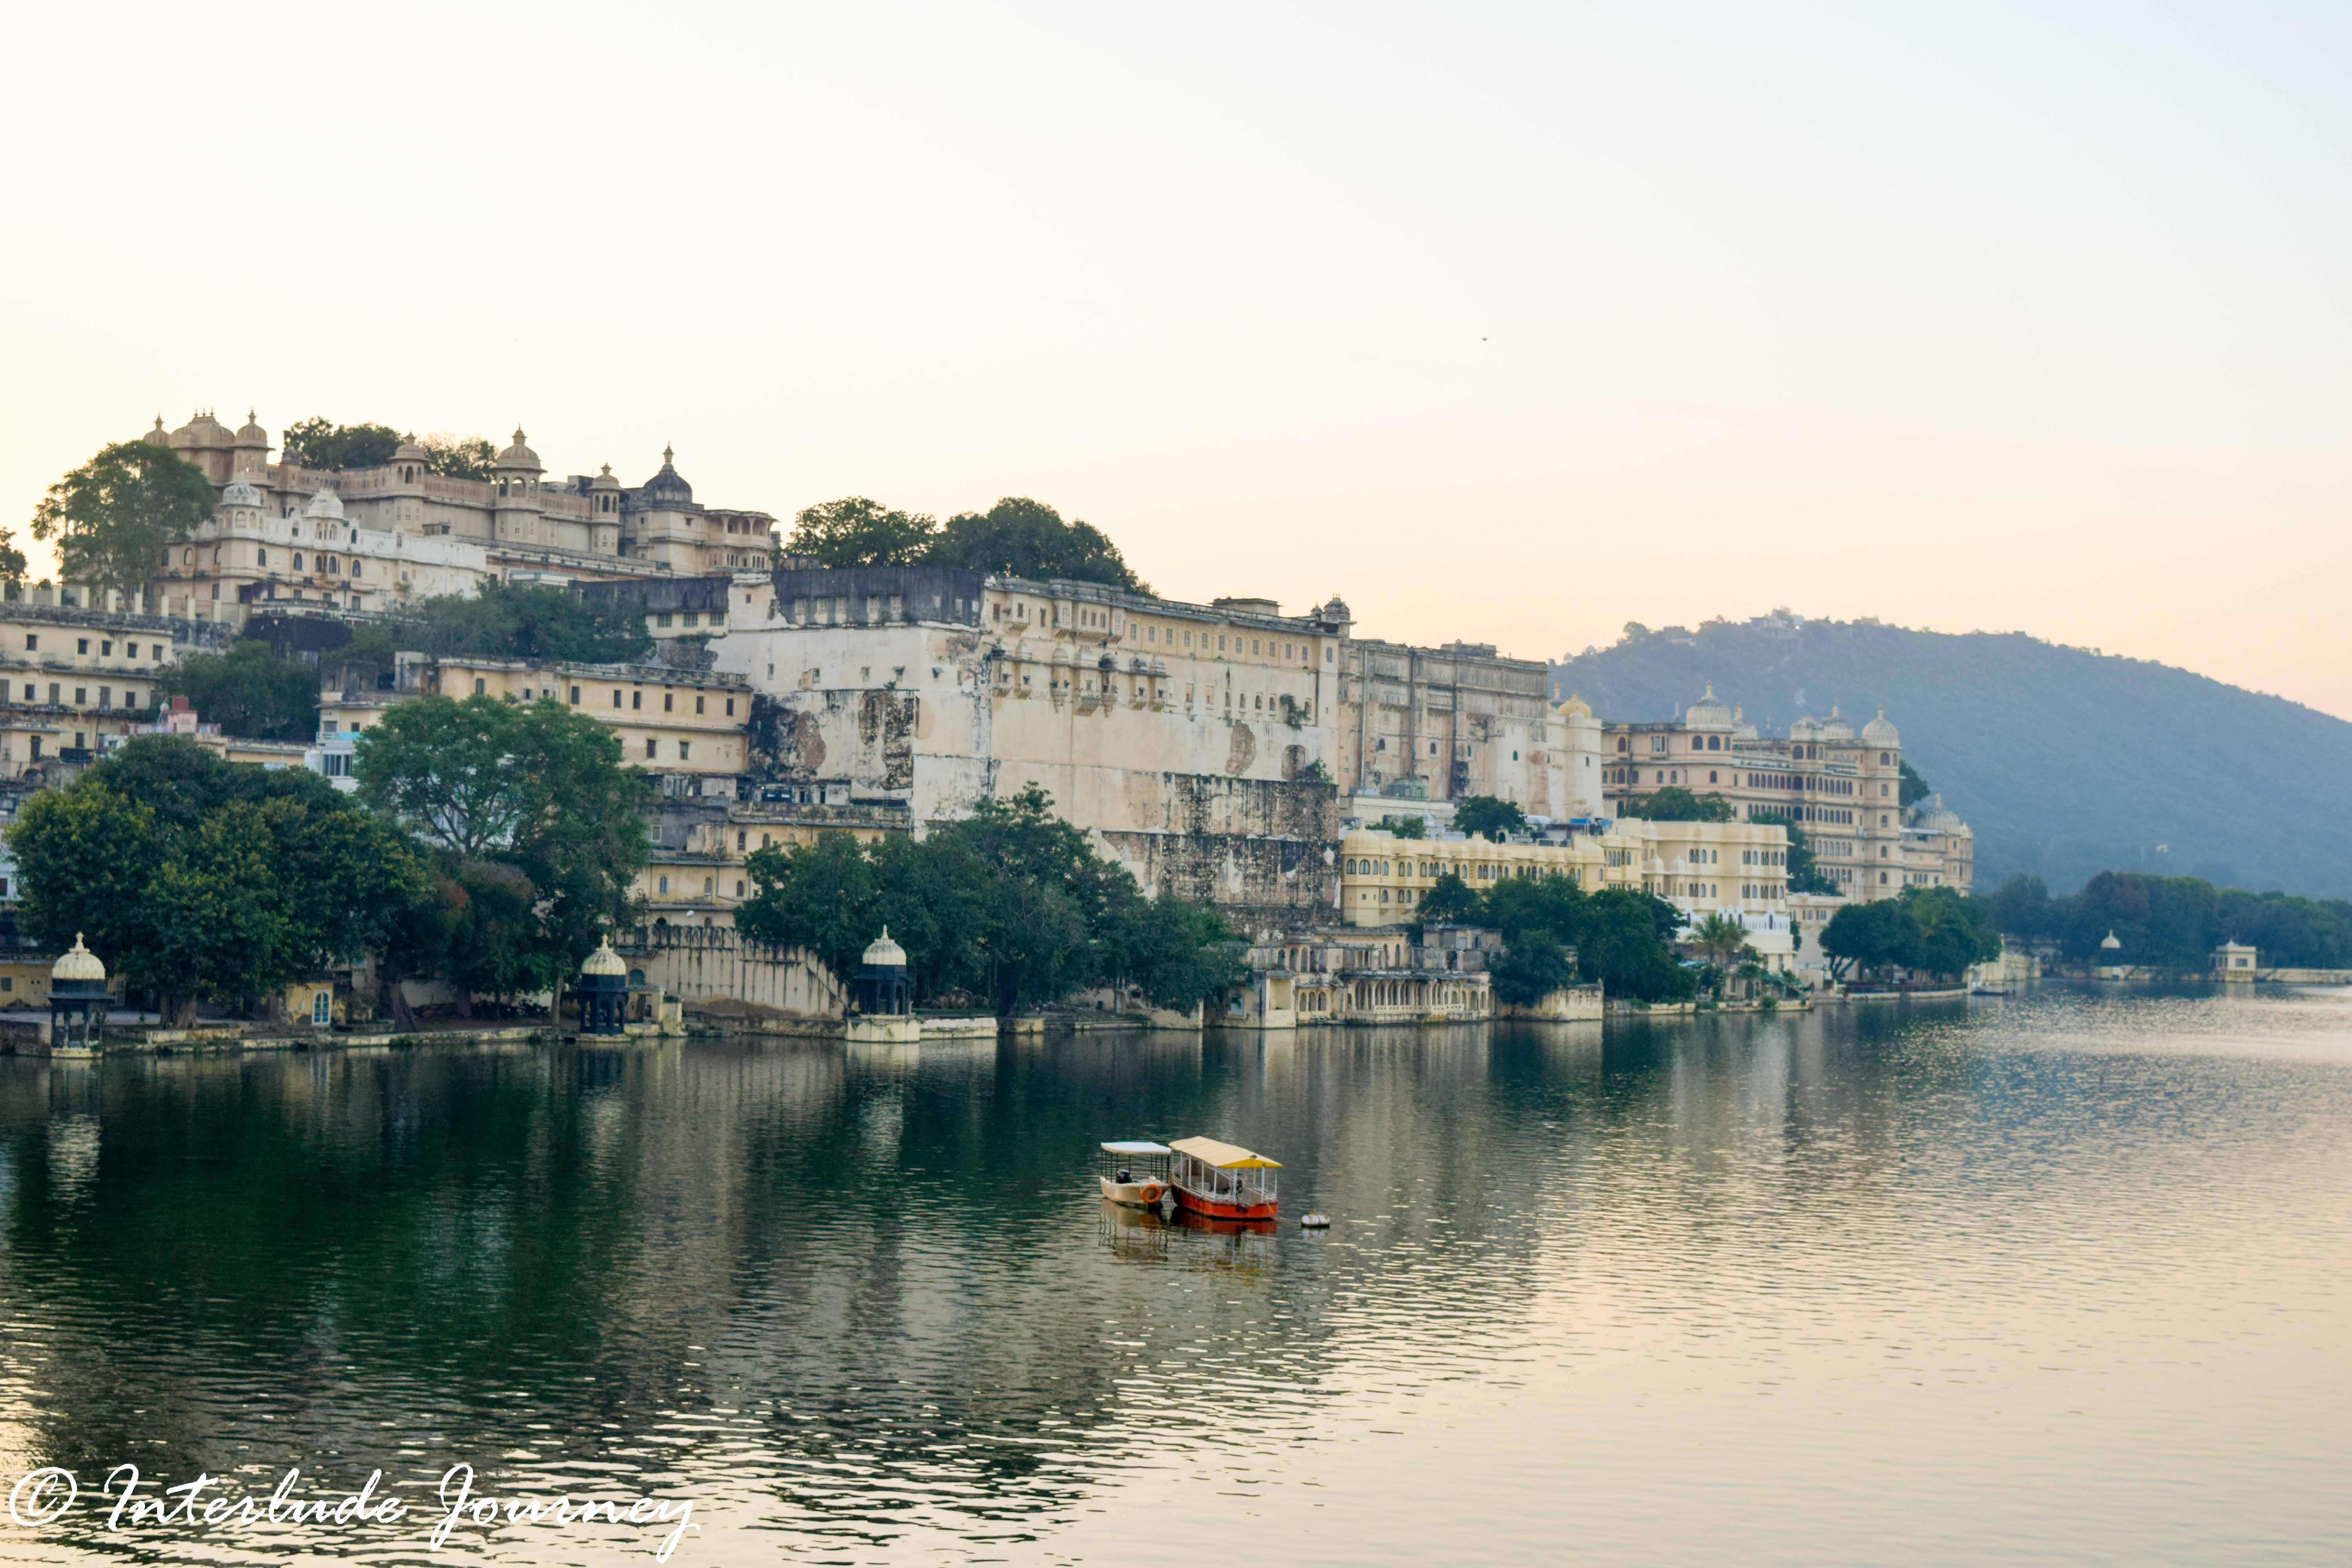 View of the Udaipur City Palace from west banks of Lake Pichola